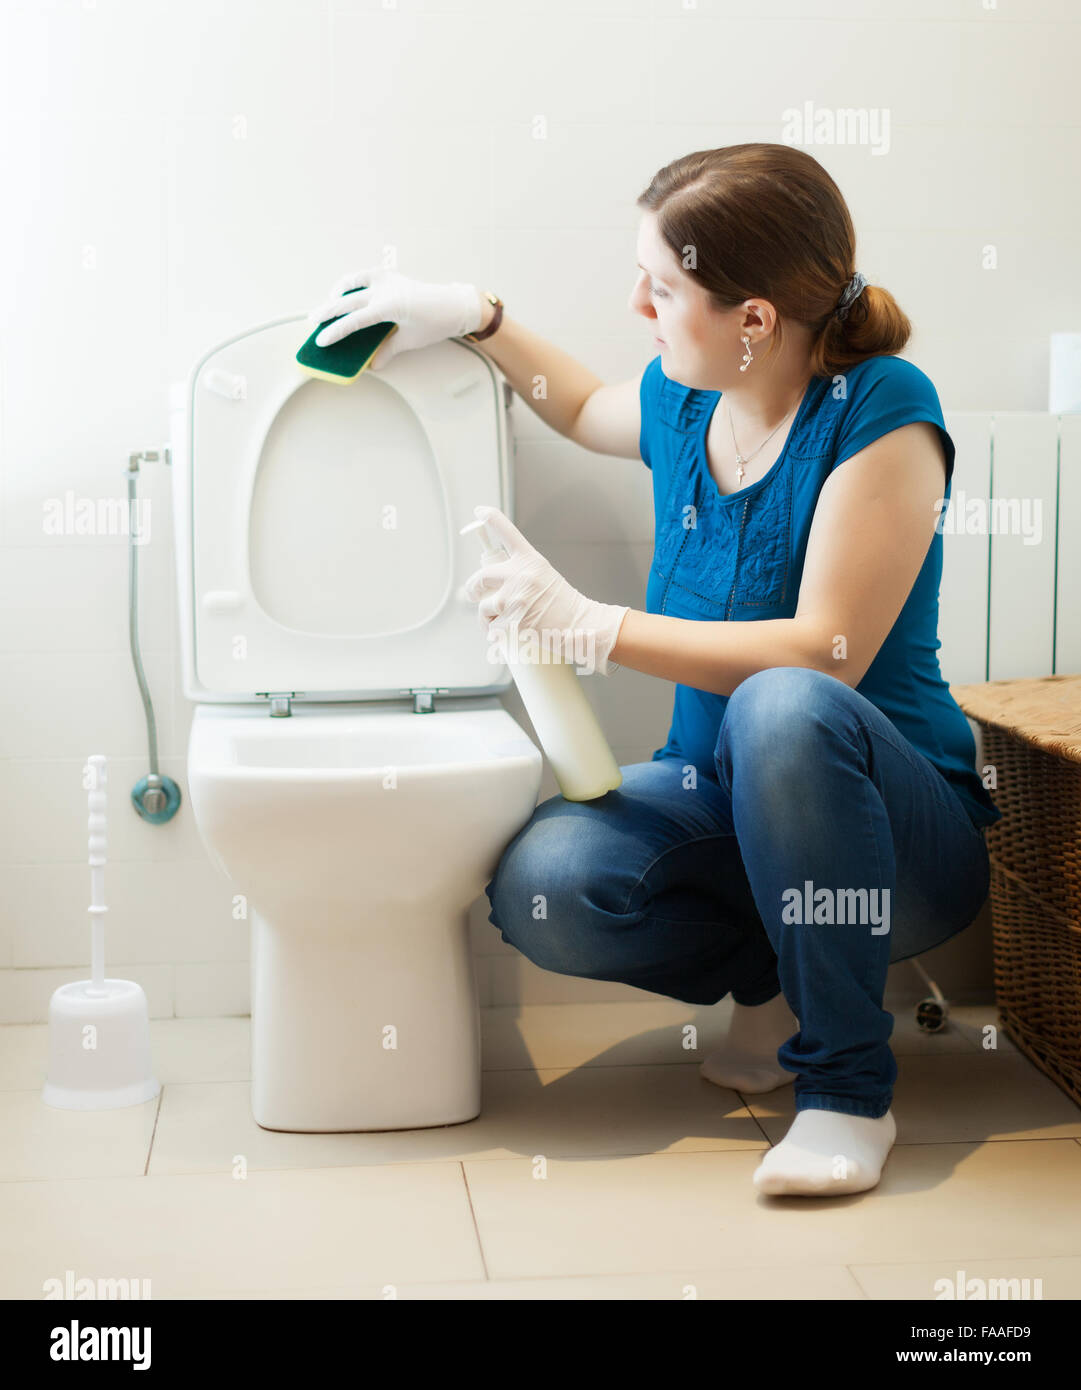 Girl Cleaning Toilet Seat With Sponge And Cleaner At Her Home Stock - Bathroom cleaning lady